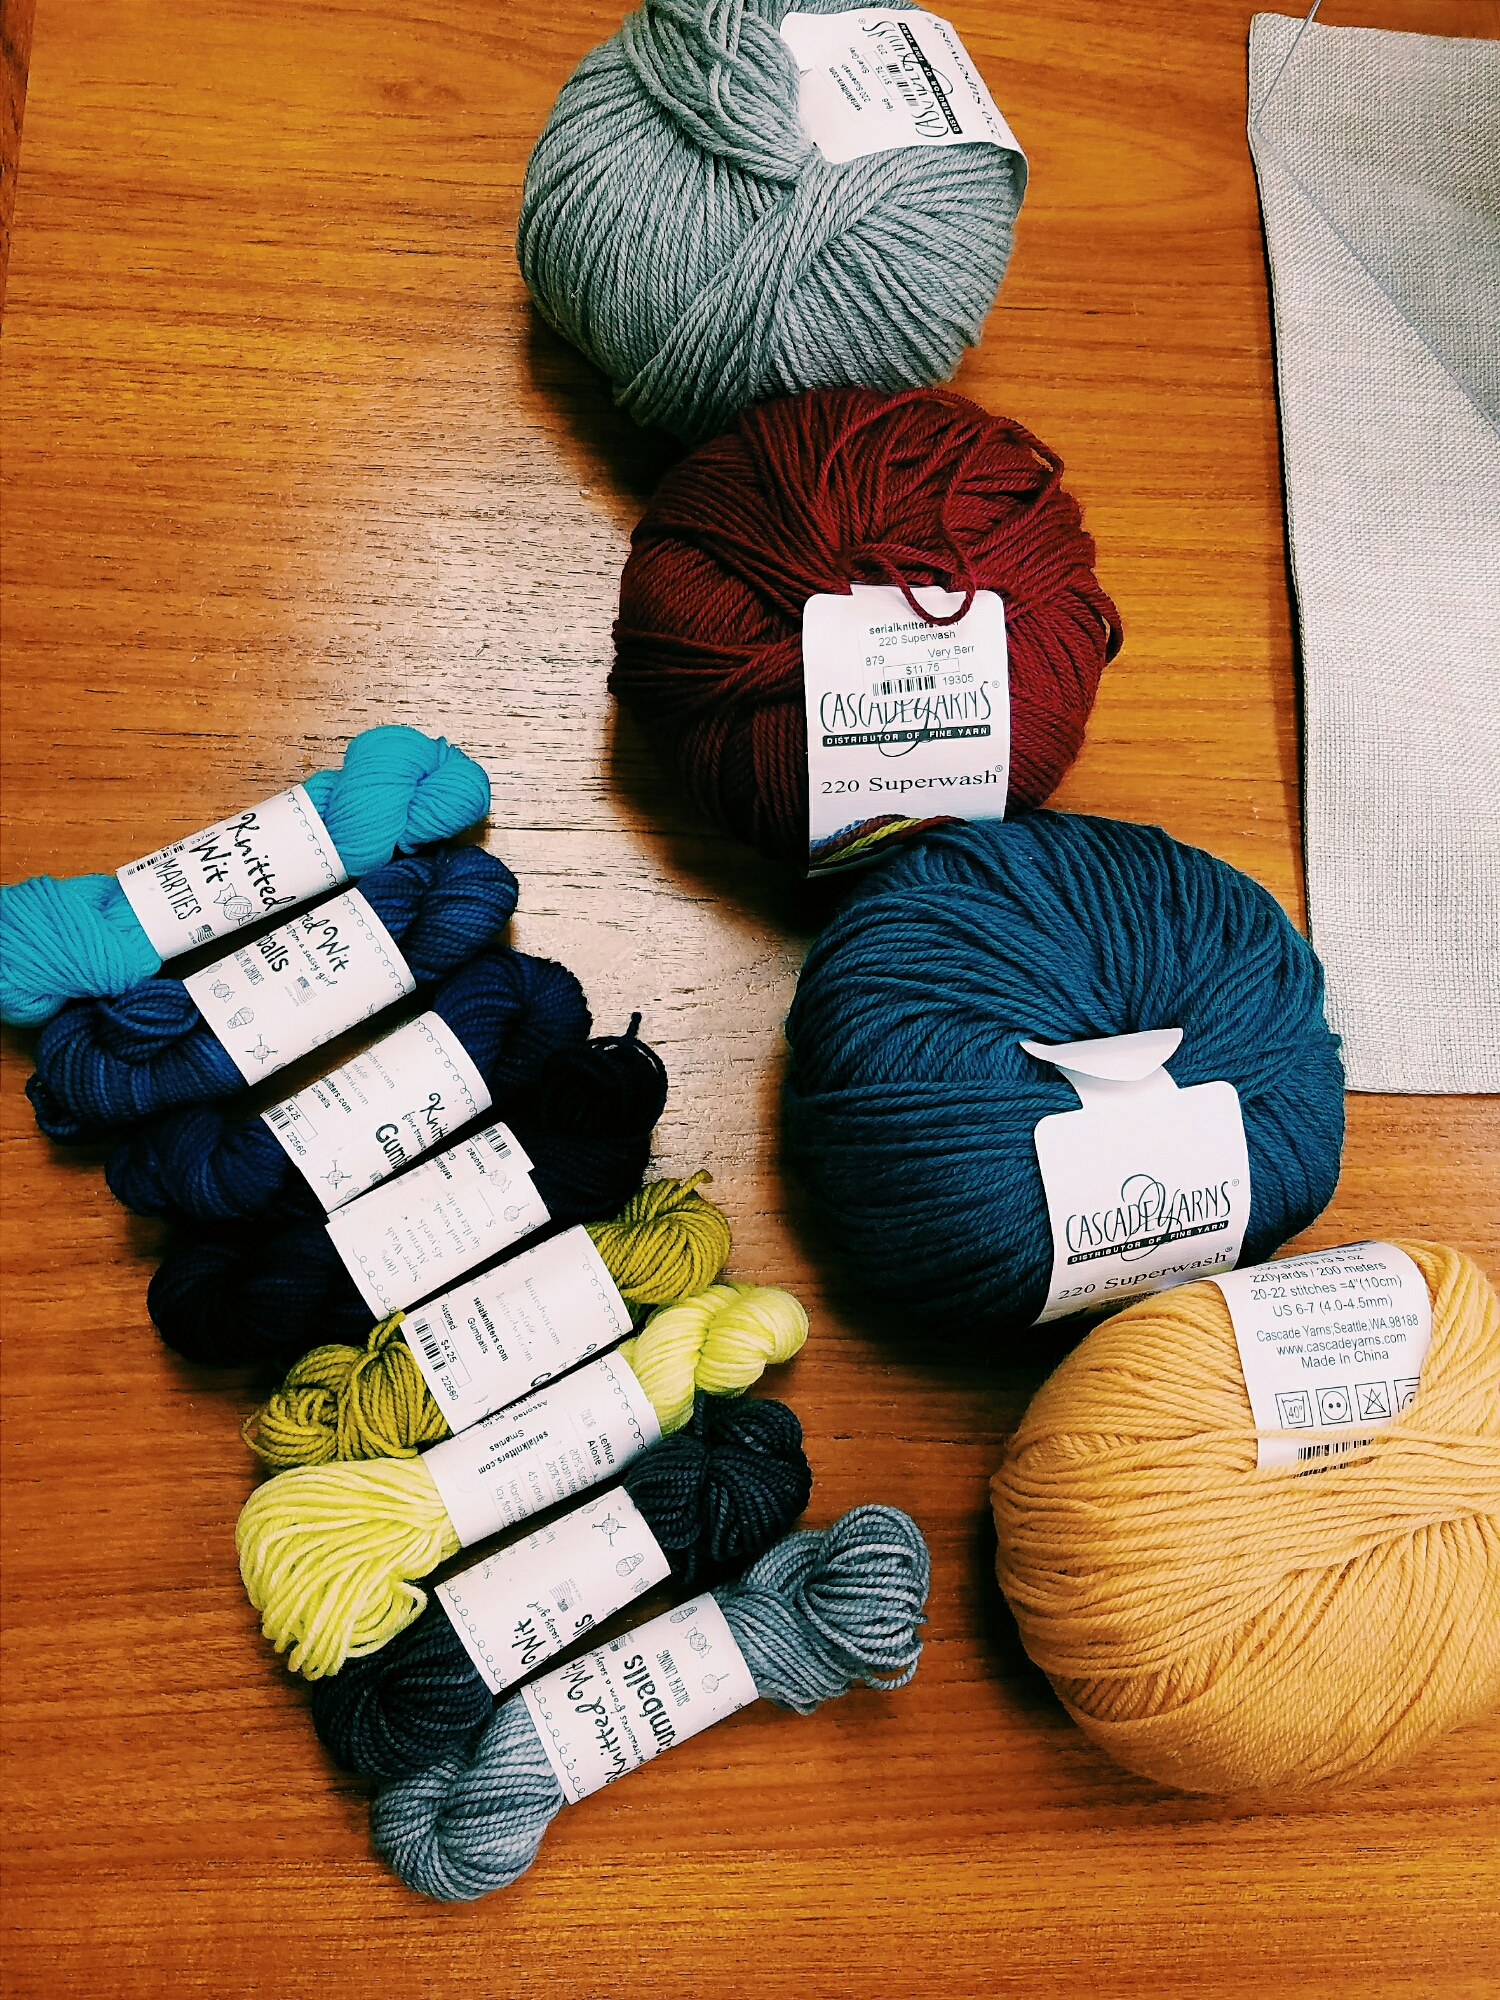 I always have a hard time deciding on colorways for new knitting projects.